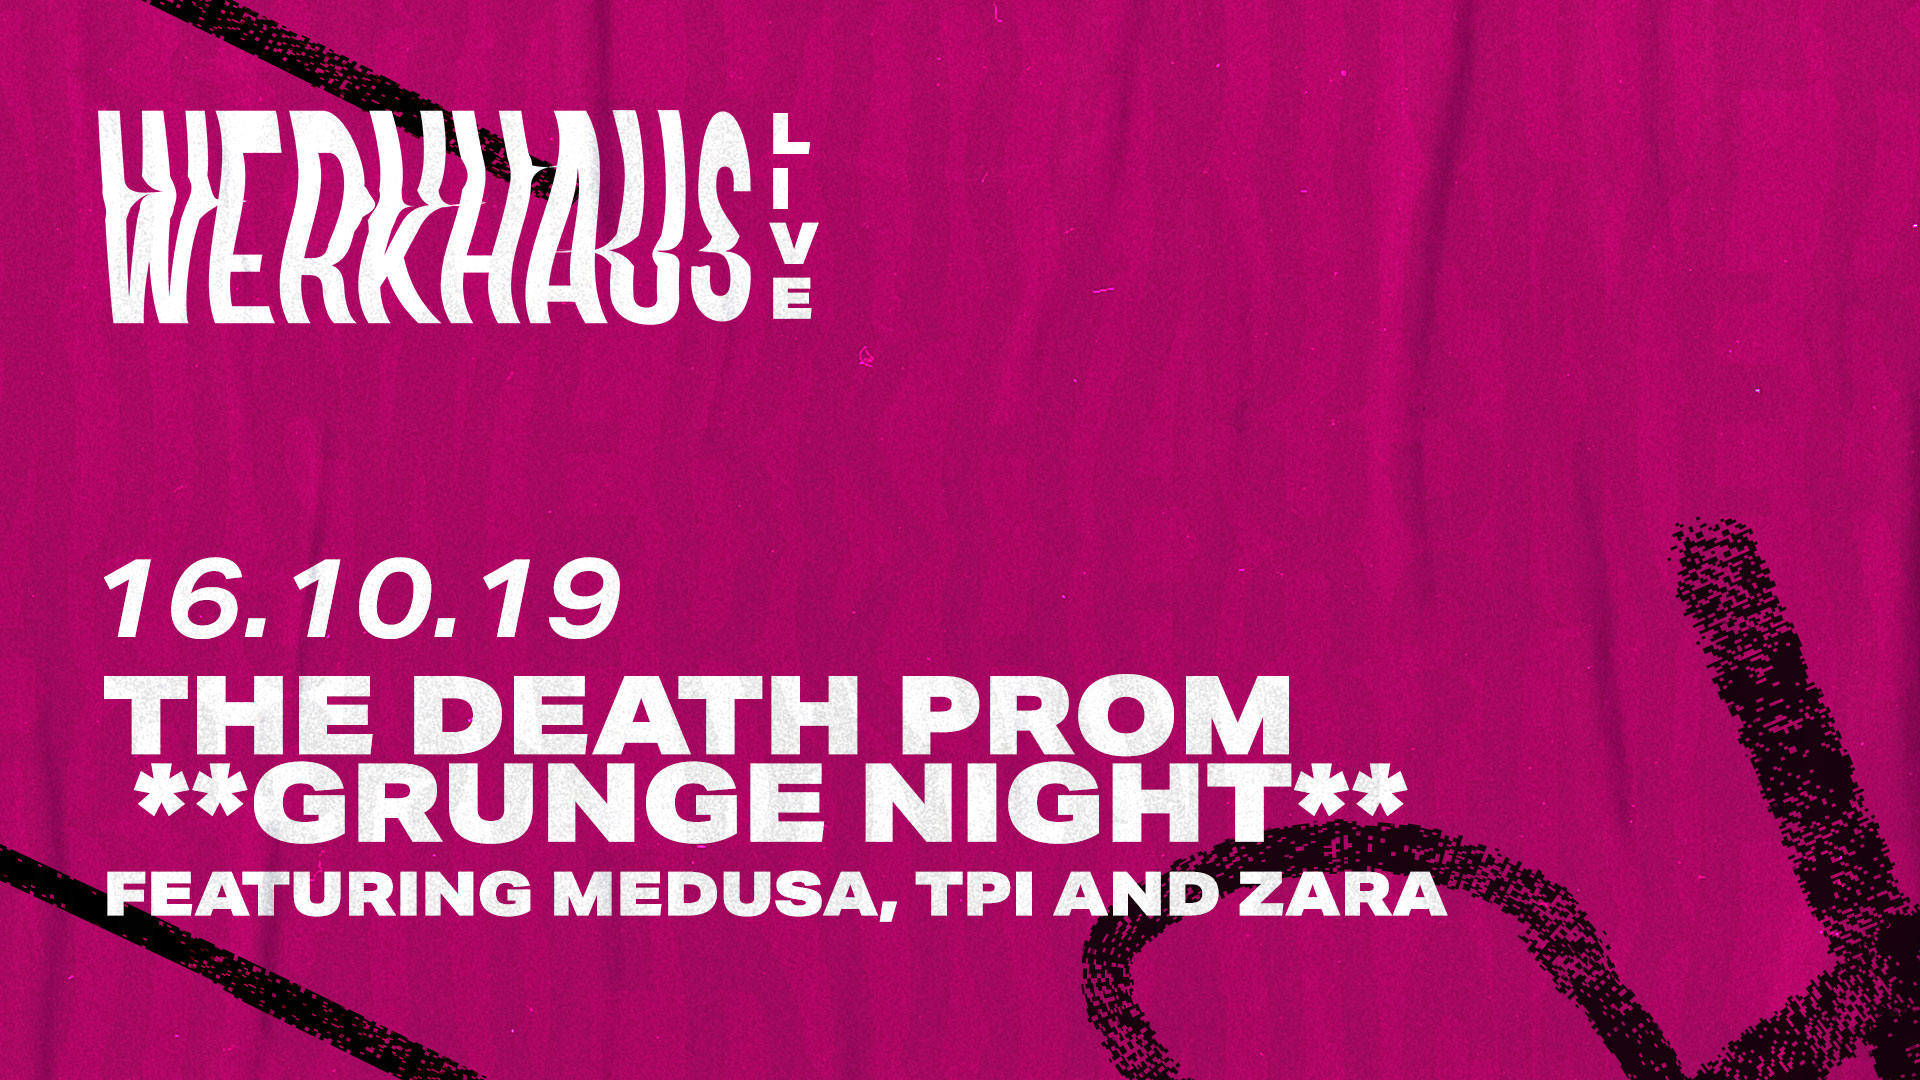 The DEATH PROM **Grunge Night** featuring Medusa, TPI and Zara